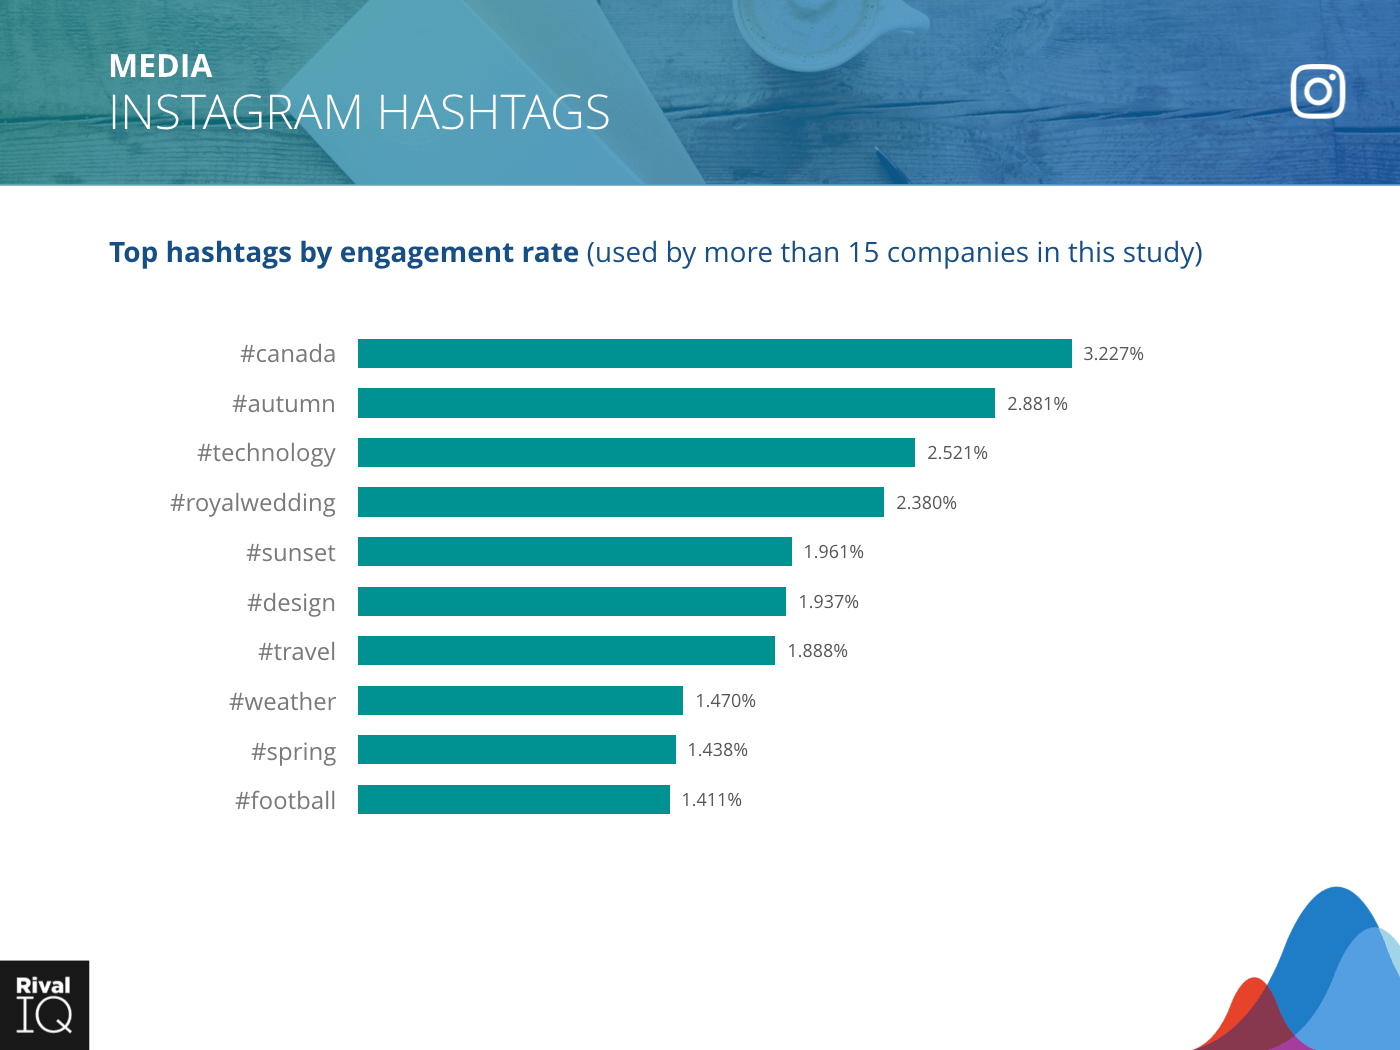 Media Industry: bar graph, top hashtags by engagement rate on Instagram